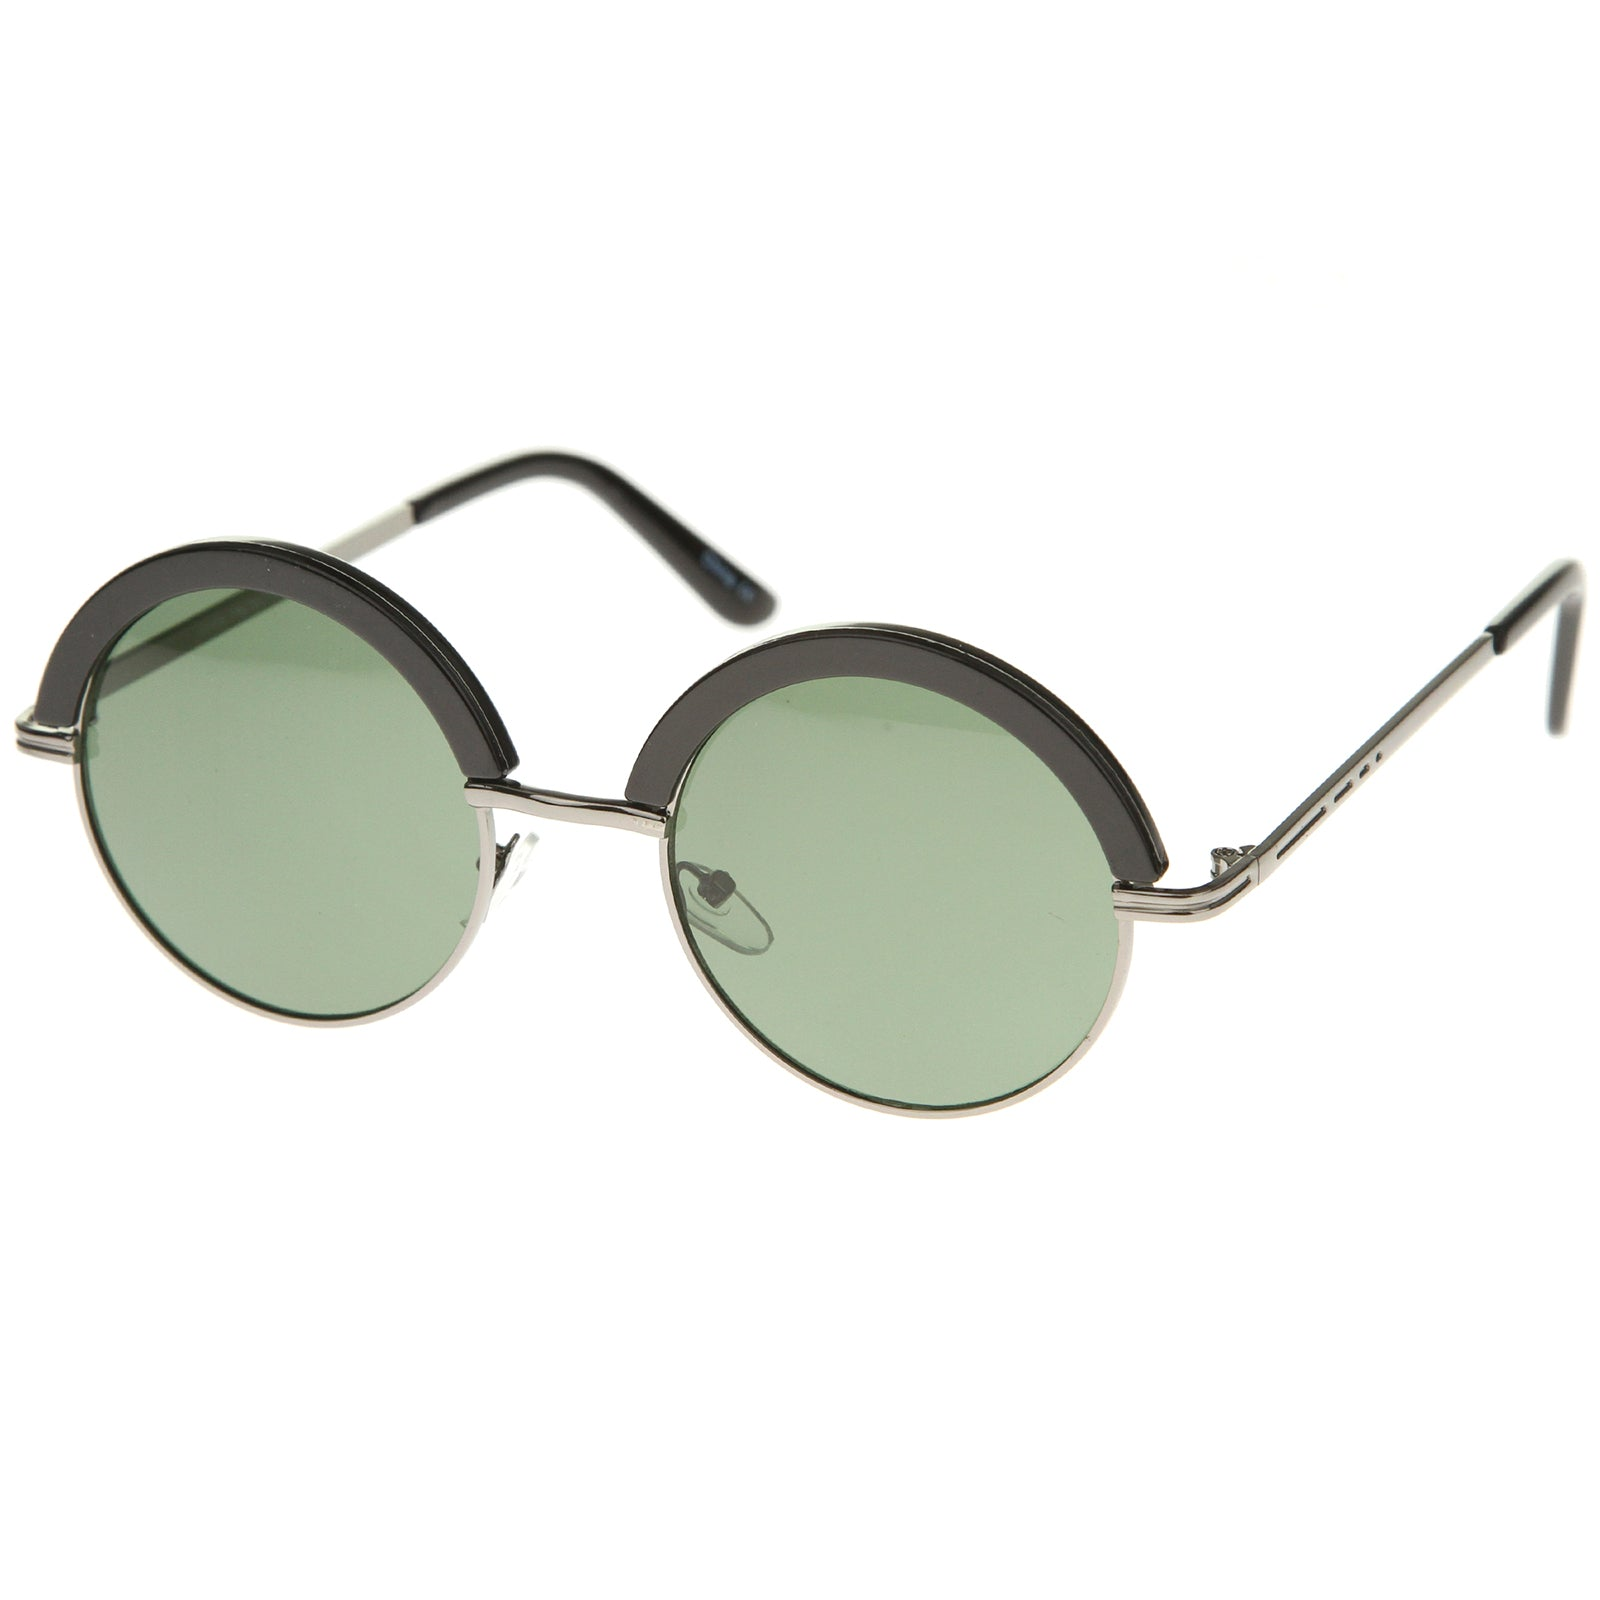 Womens Metal Round Sunglasses With UV400 Protected Composite Lens - sunglass.la - 14